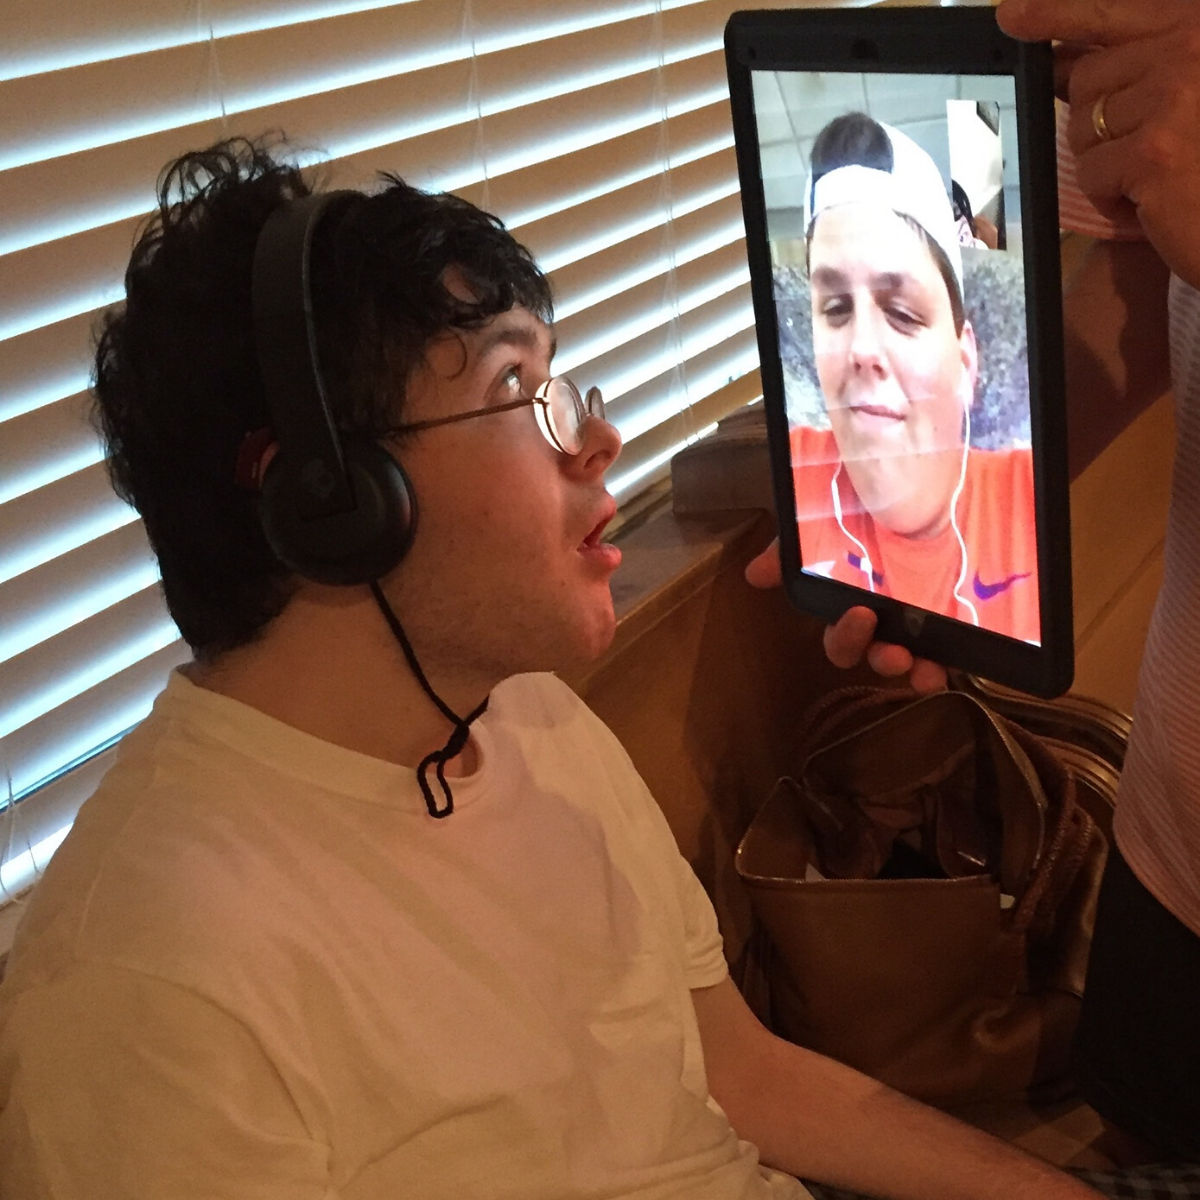 Jack facetiming a friend.